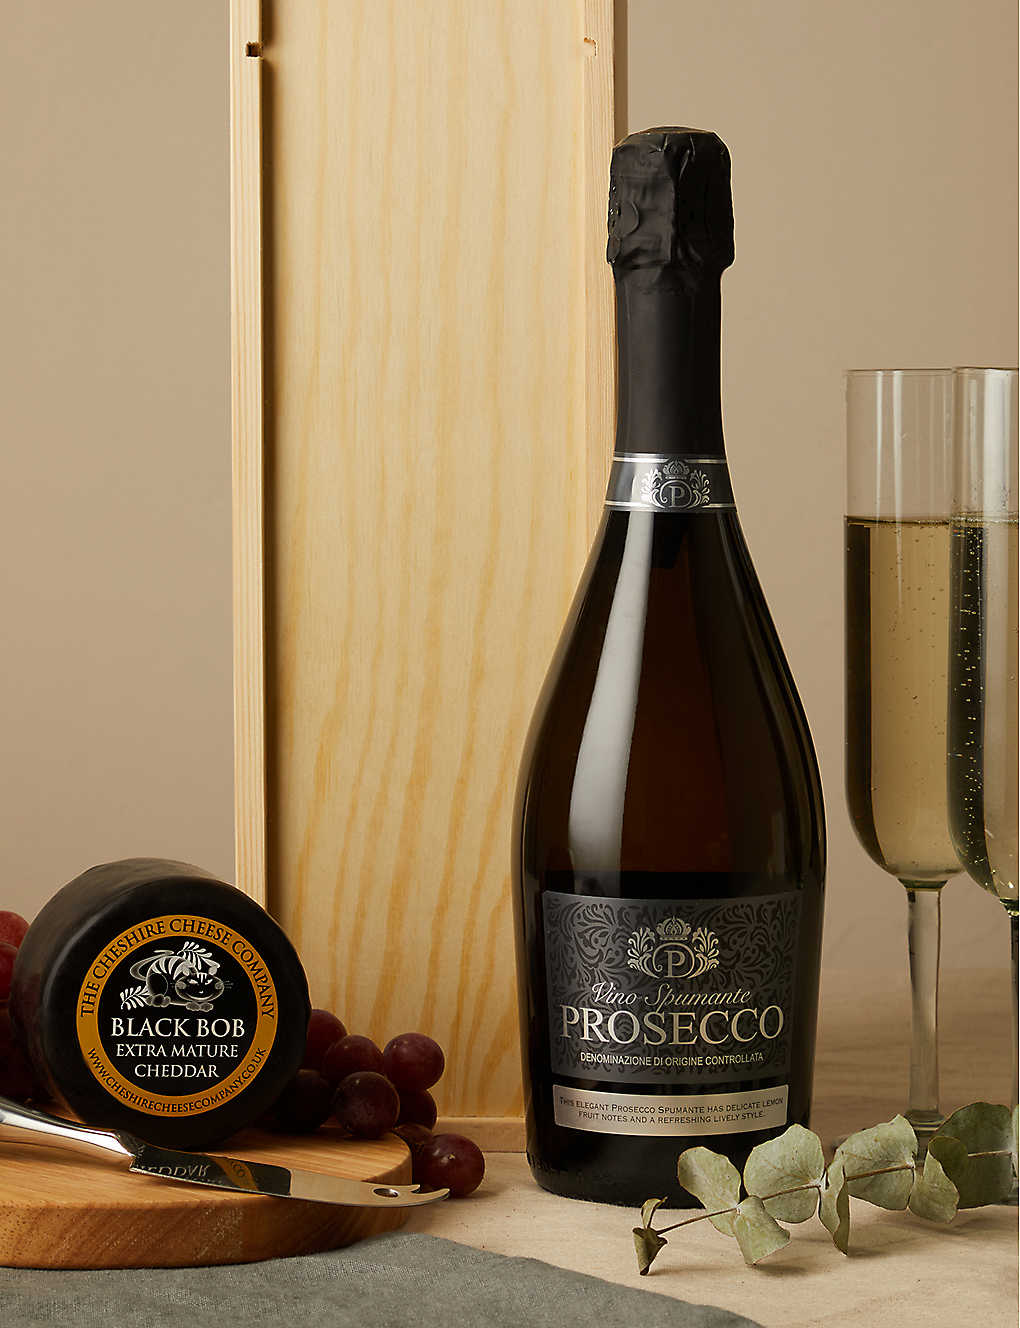 CHESHIRE CHEESE COMPANY: Prosecco and Black Bob extra mature cheddar cheese set